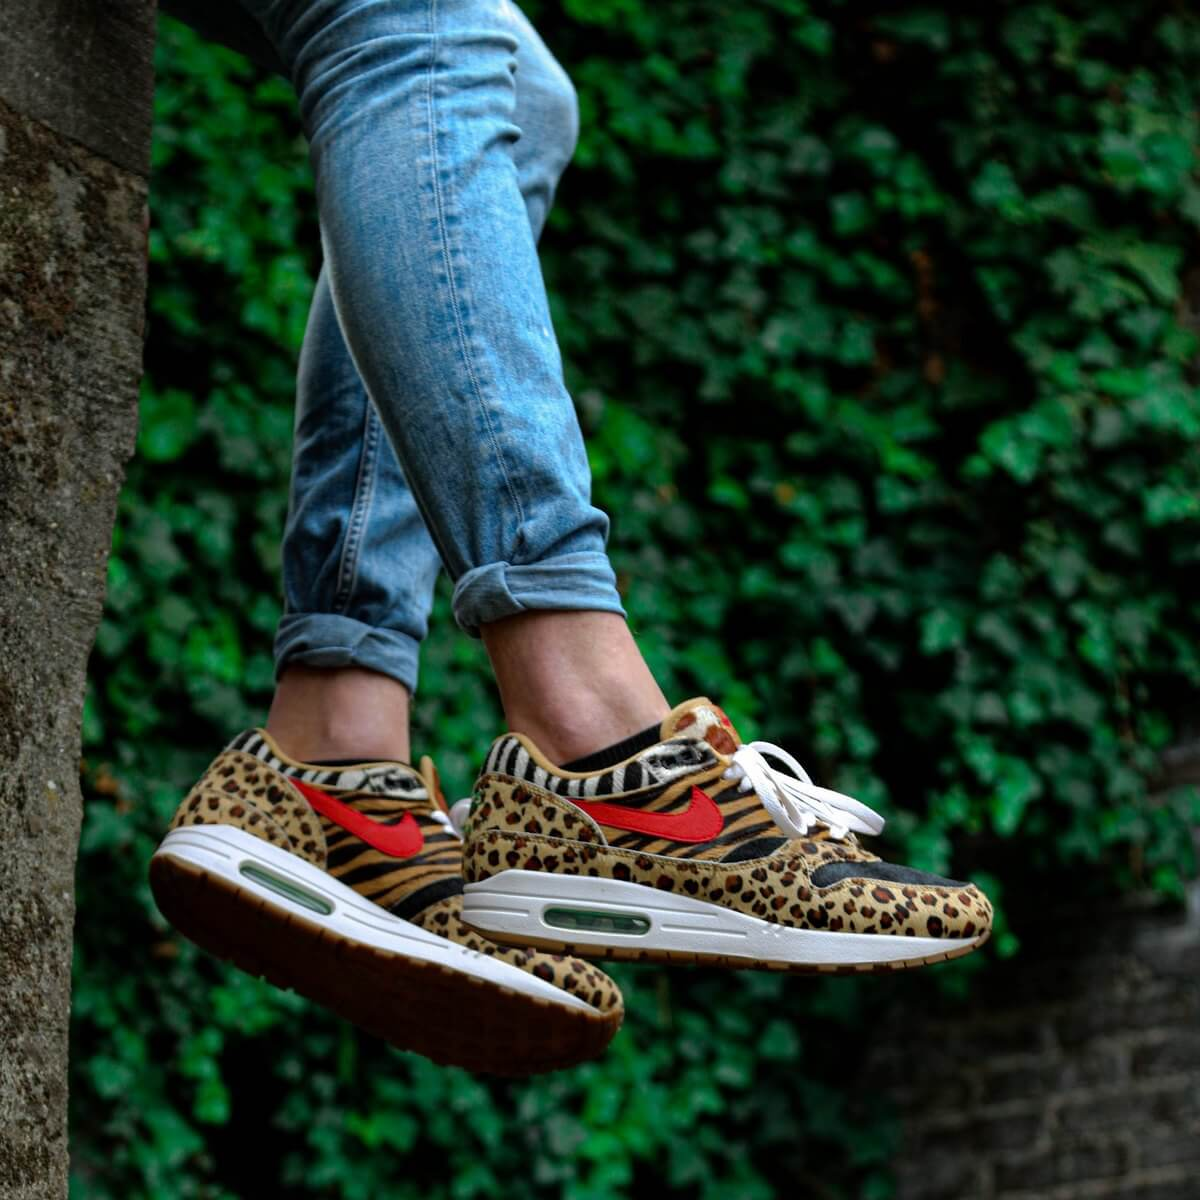 Nike Air Max 1 Atmos Animal Pack 2.0 - wheat/sport red-bisoon-classic green - AQ0928-700